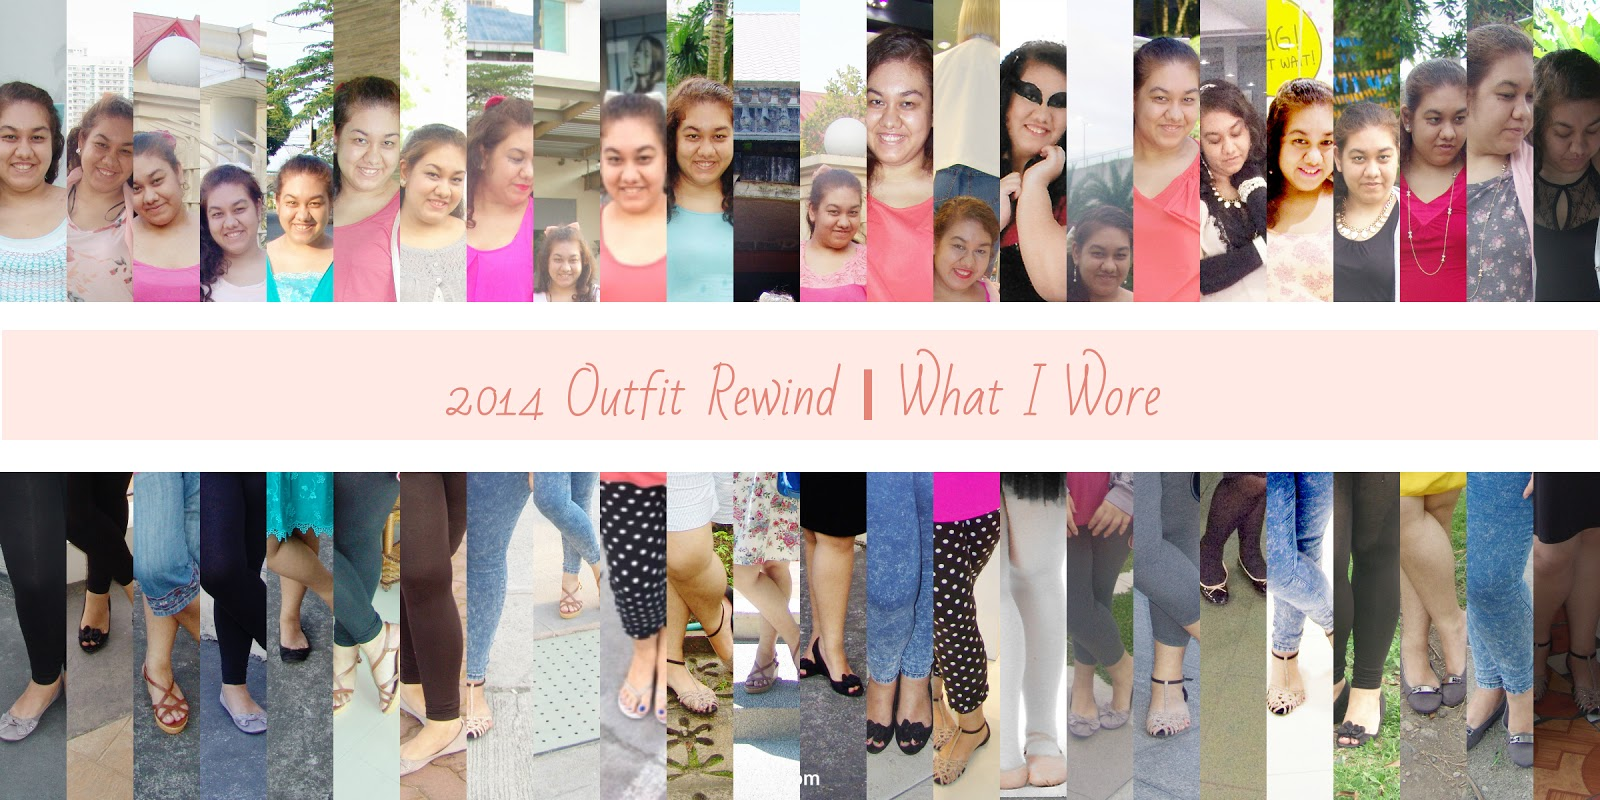 2014 Outfit Rewind | What I Wore